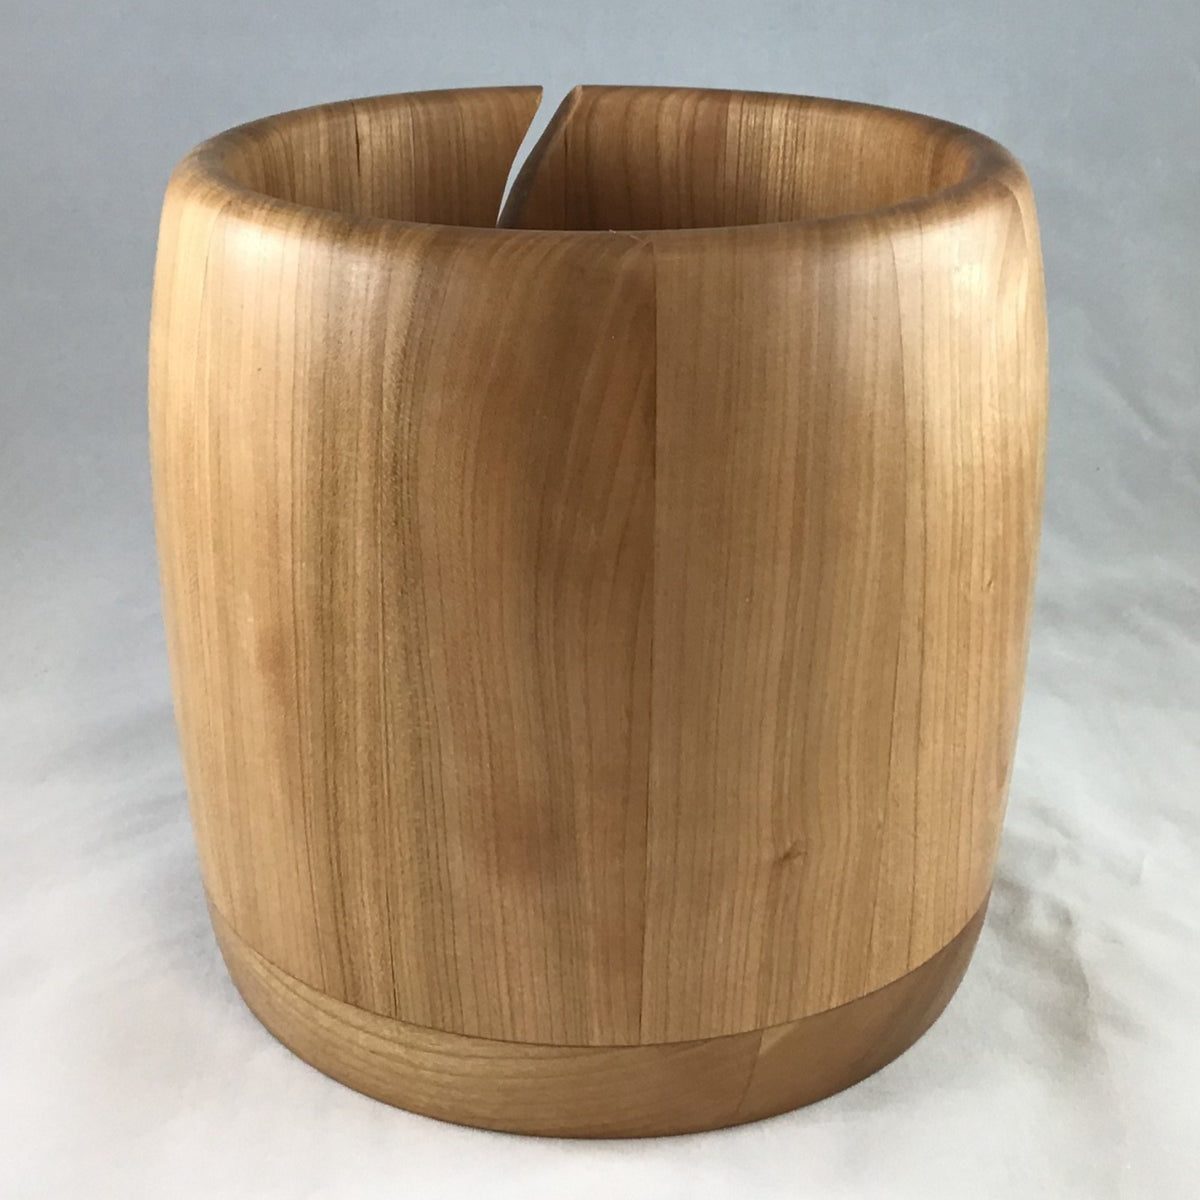 A wooden yarn bowl made from Cherry wood against a white backdrop